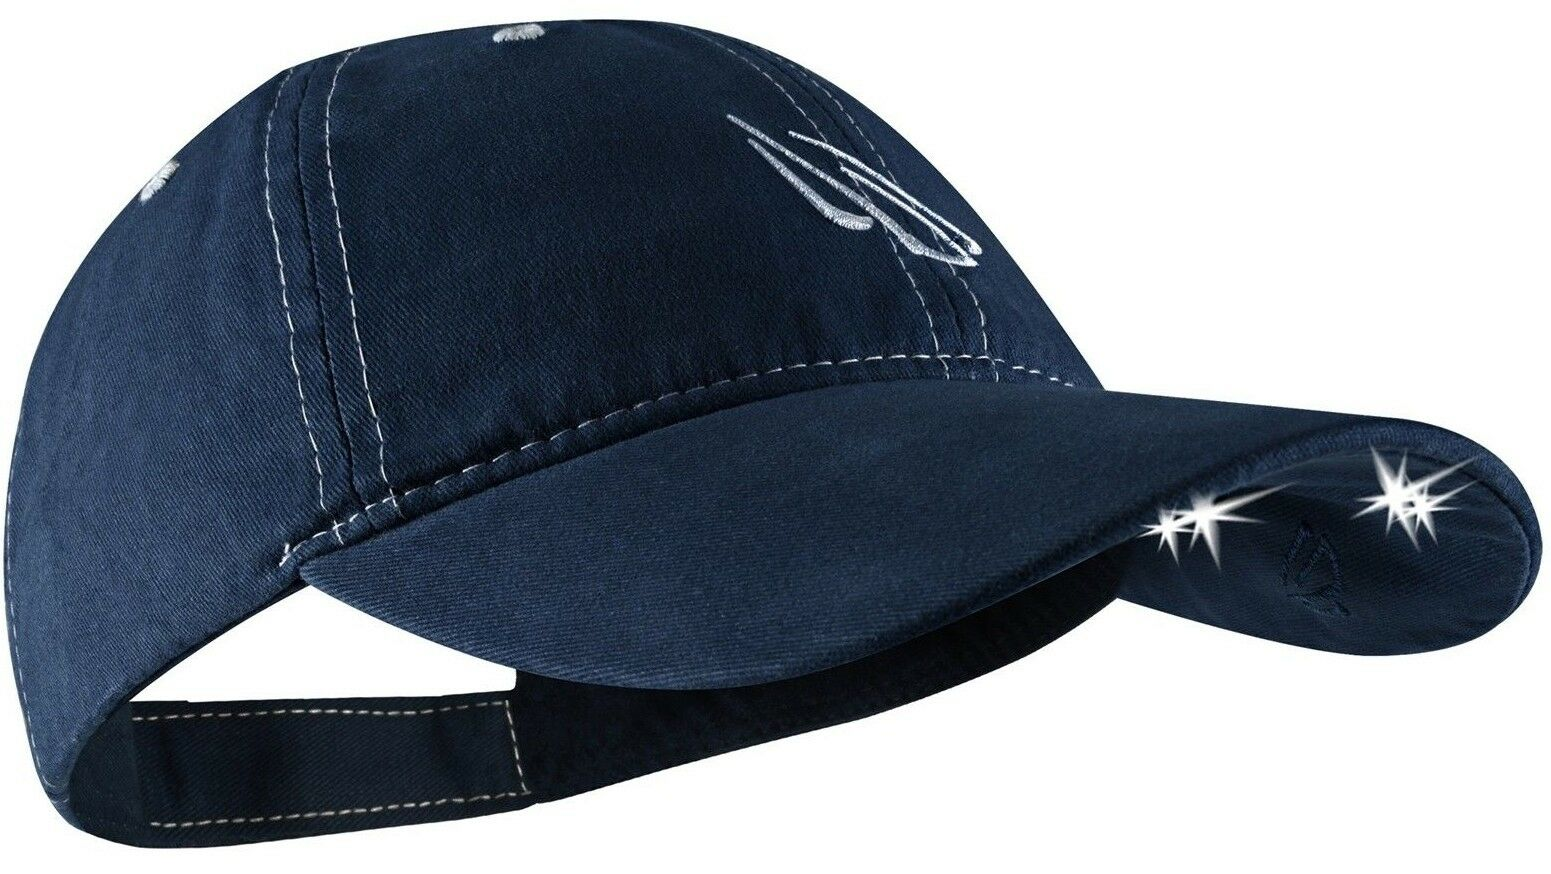 Panther Vision 4-LED POWER CAP 100% Brushed & Washed Cotton Twill NAVY